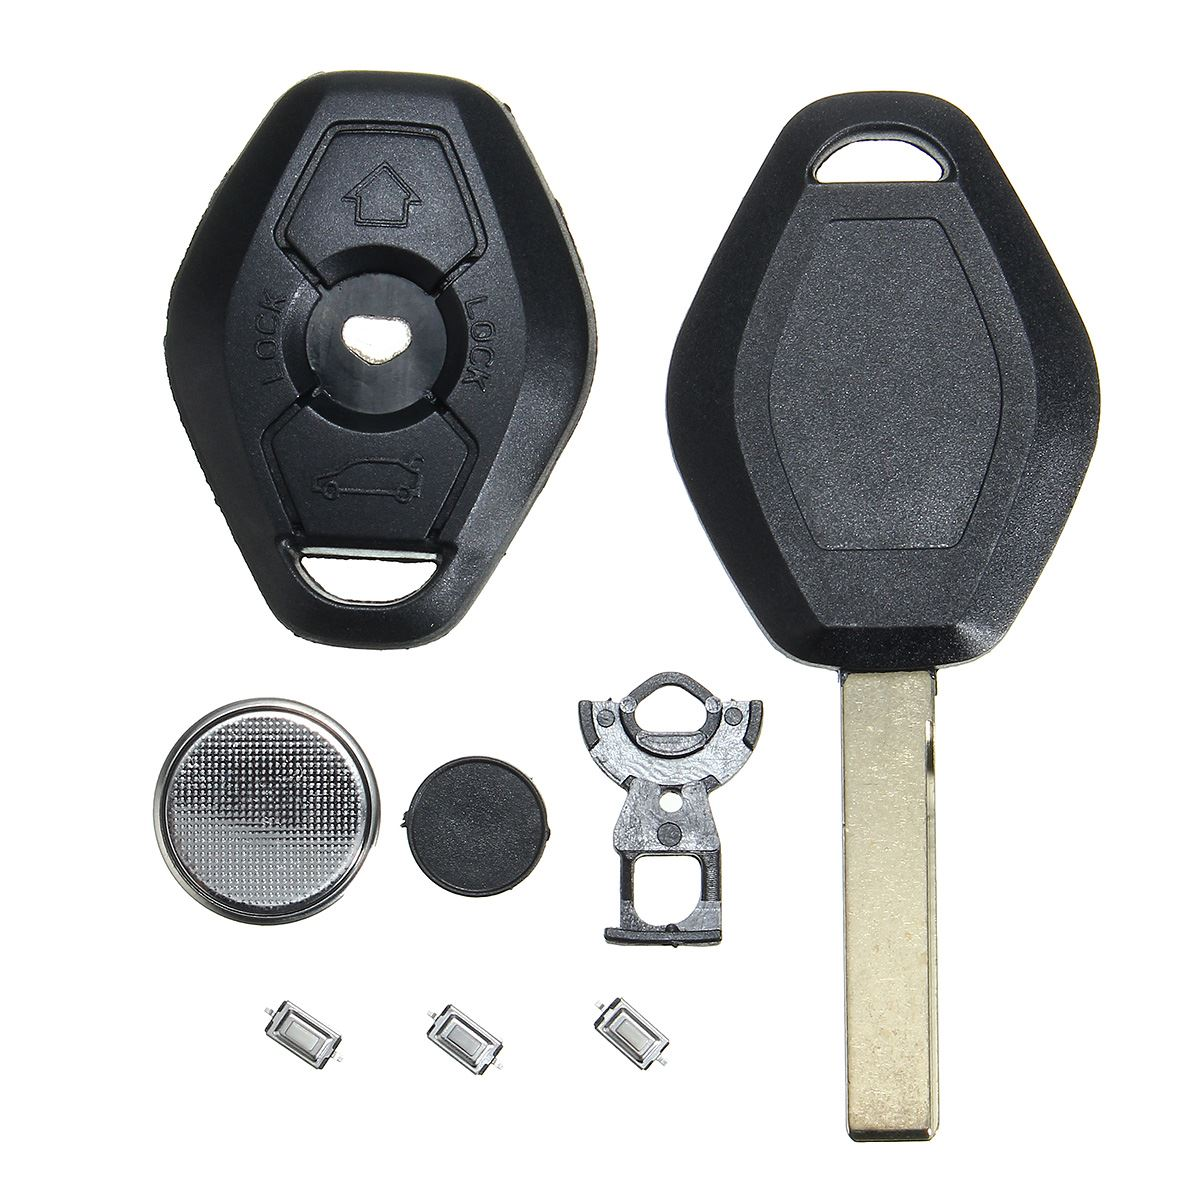 Popular Key Fob Micro SwitchesBuy Cheap Key Fob Micro Switches